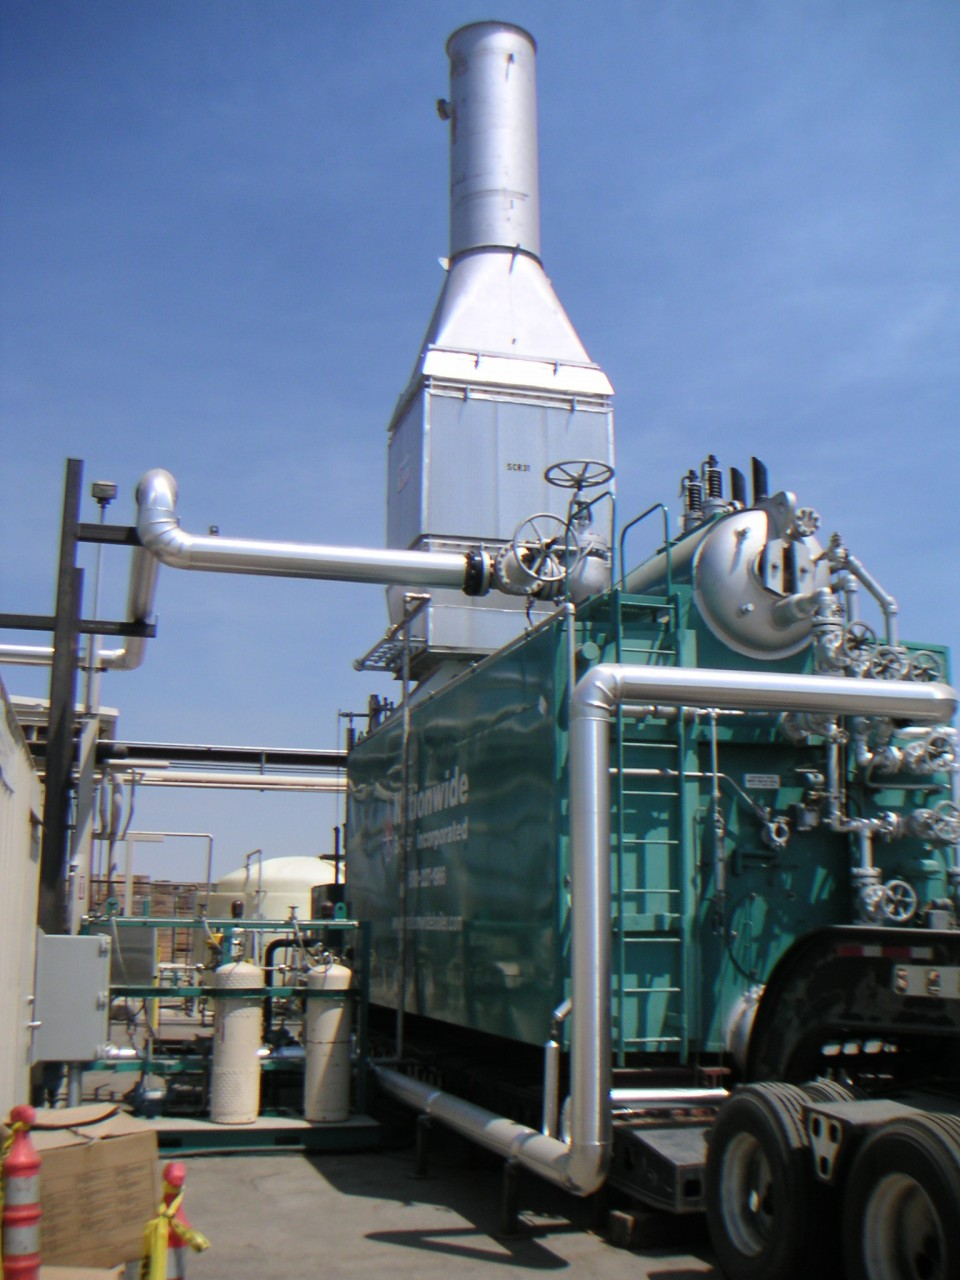 Trailer-Mounted Boiler with Non-Return Valve